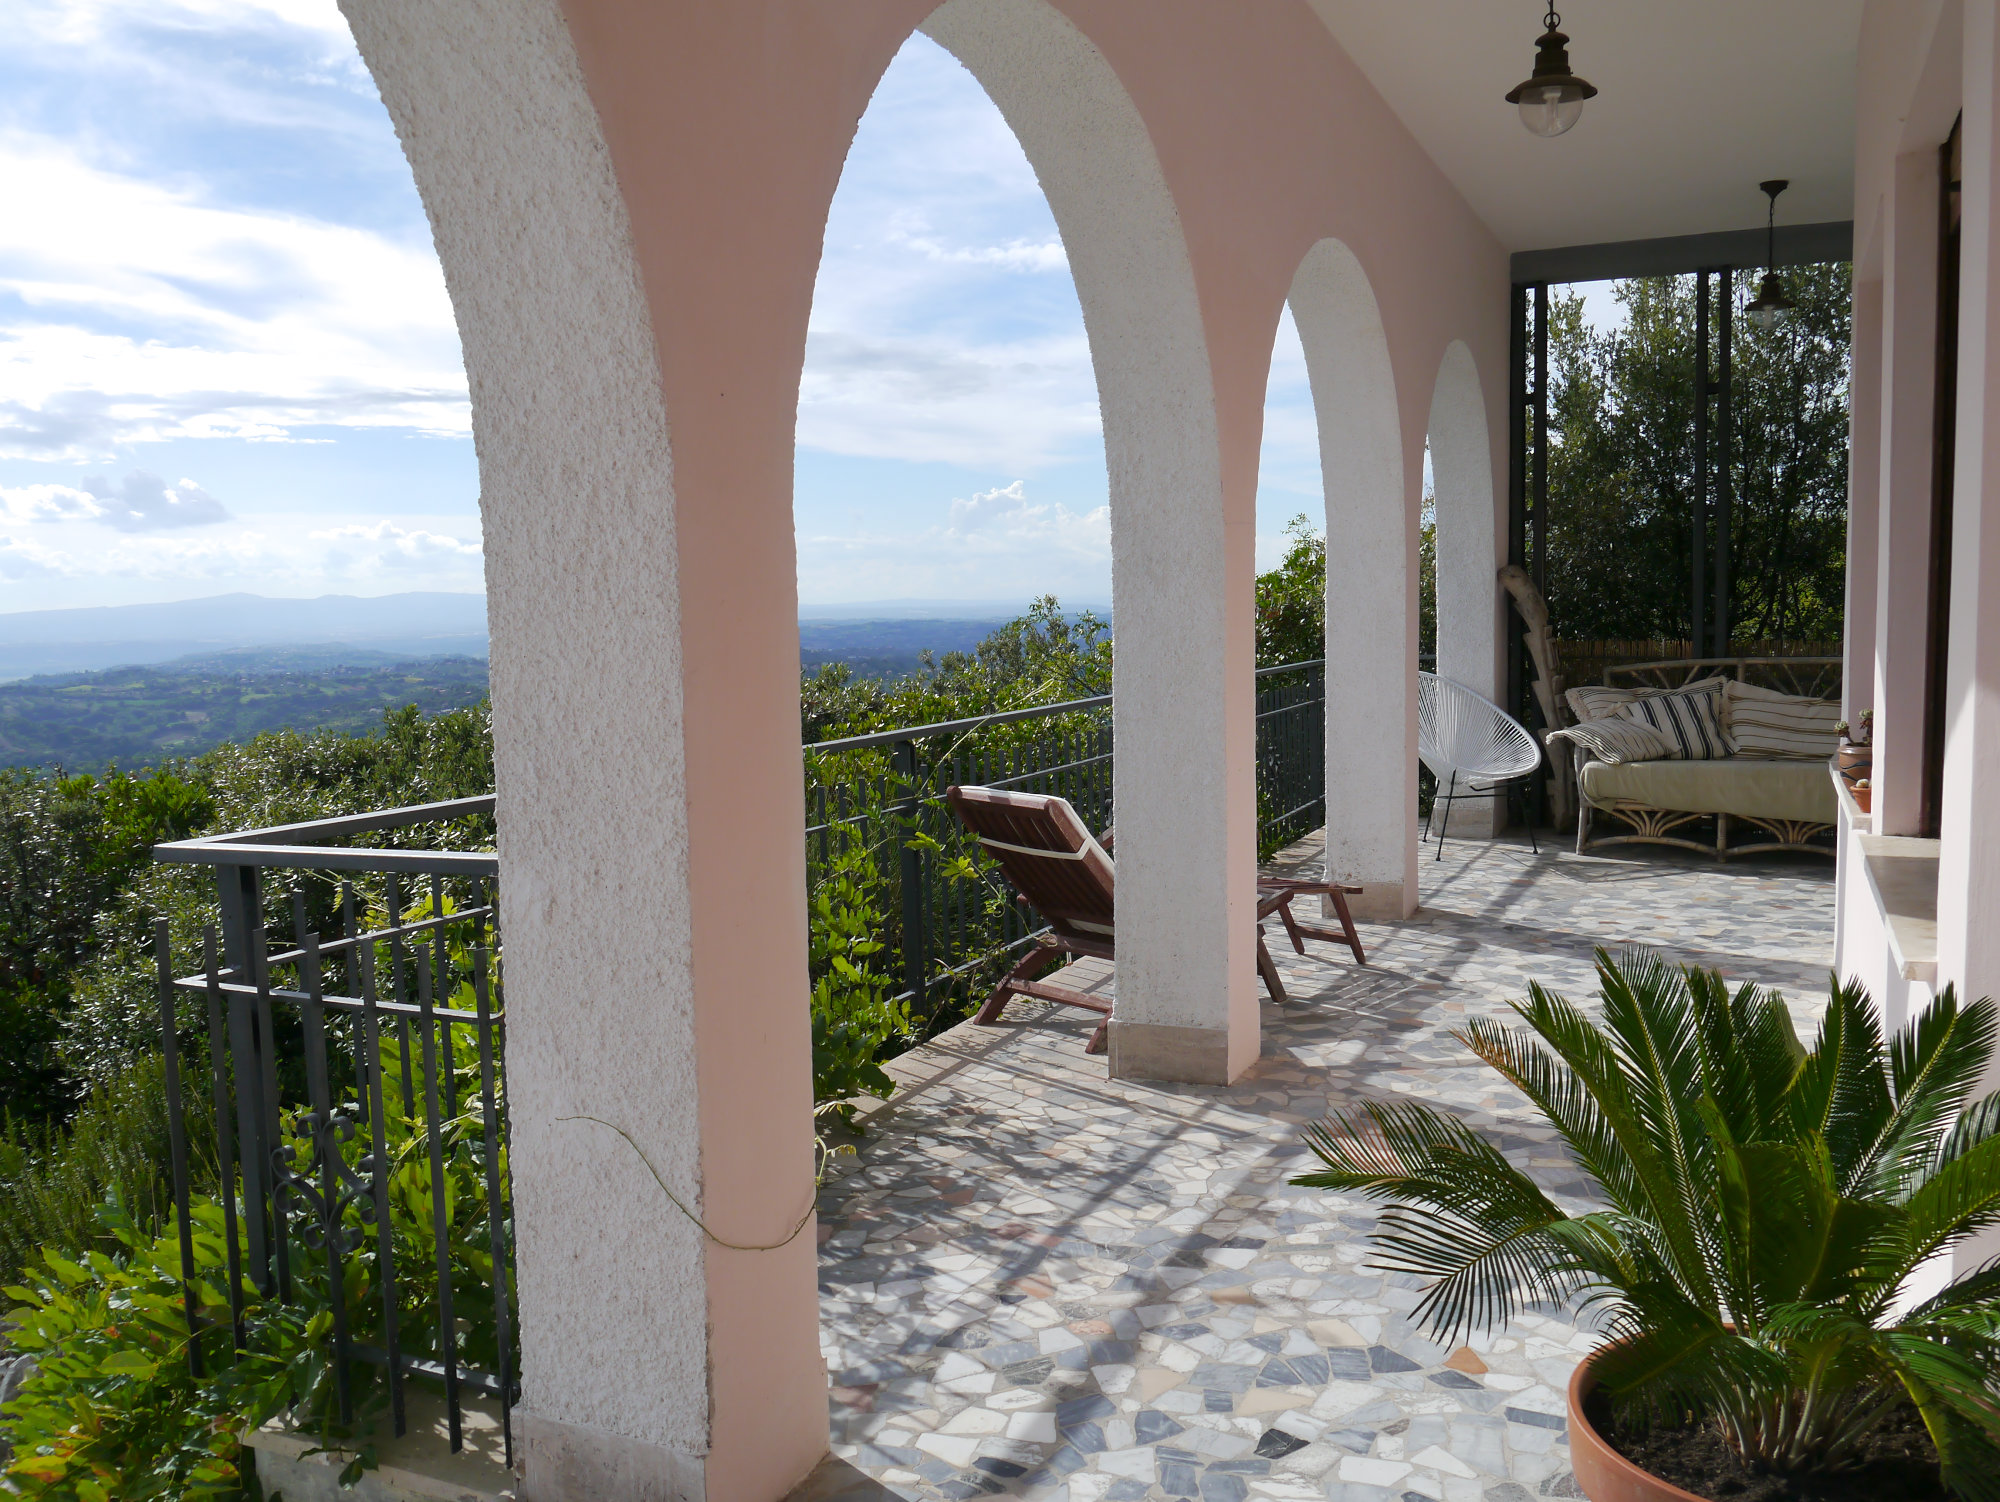 The porch - rental villa near Rome